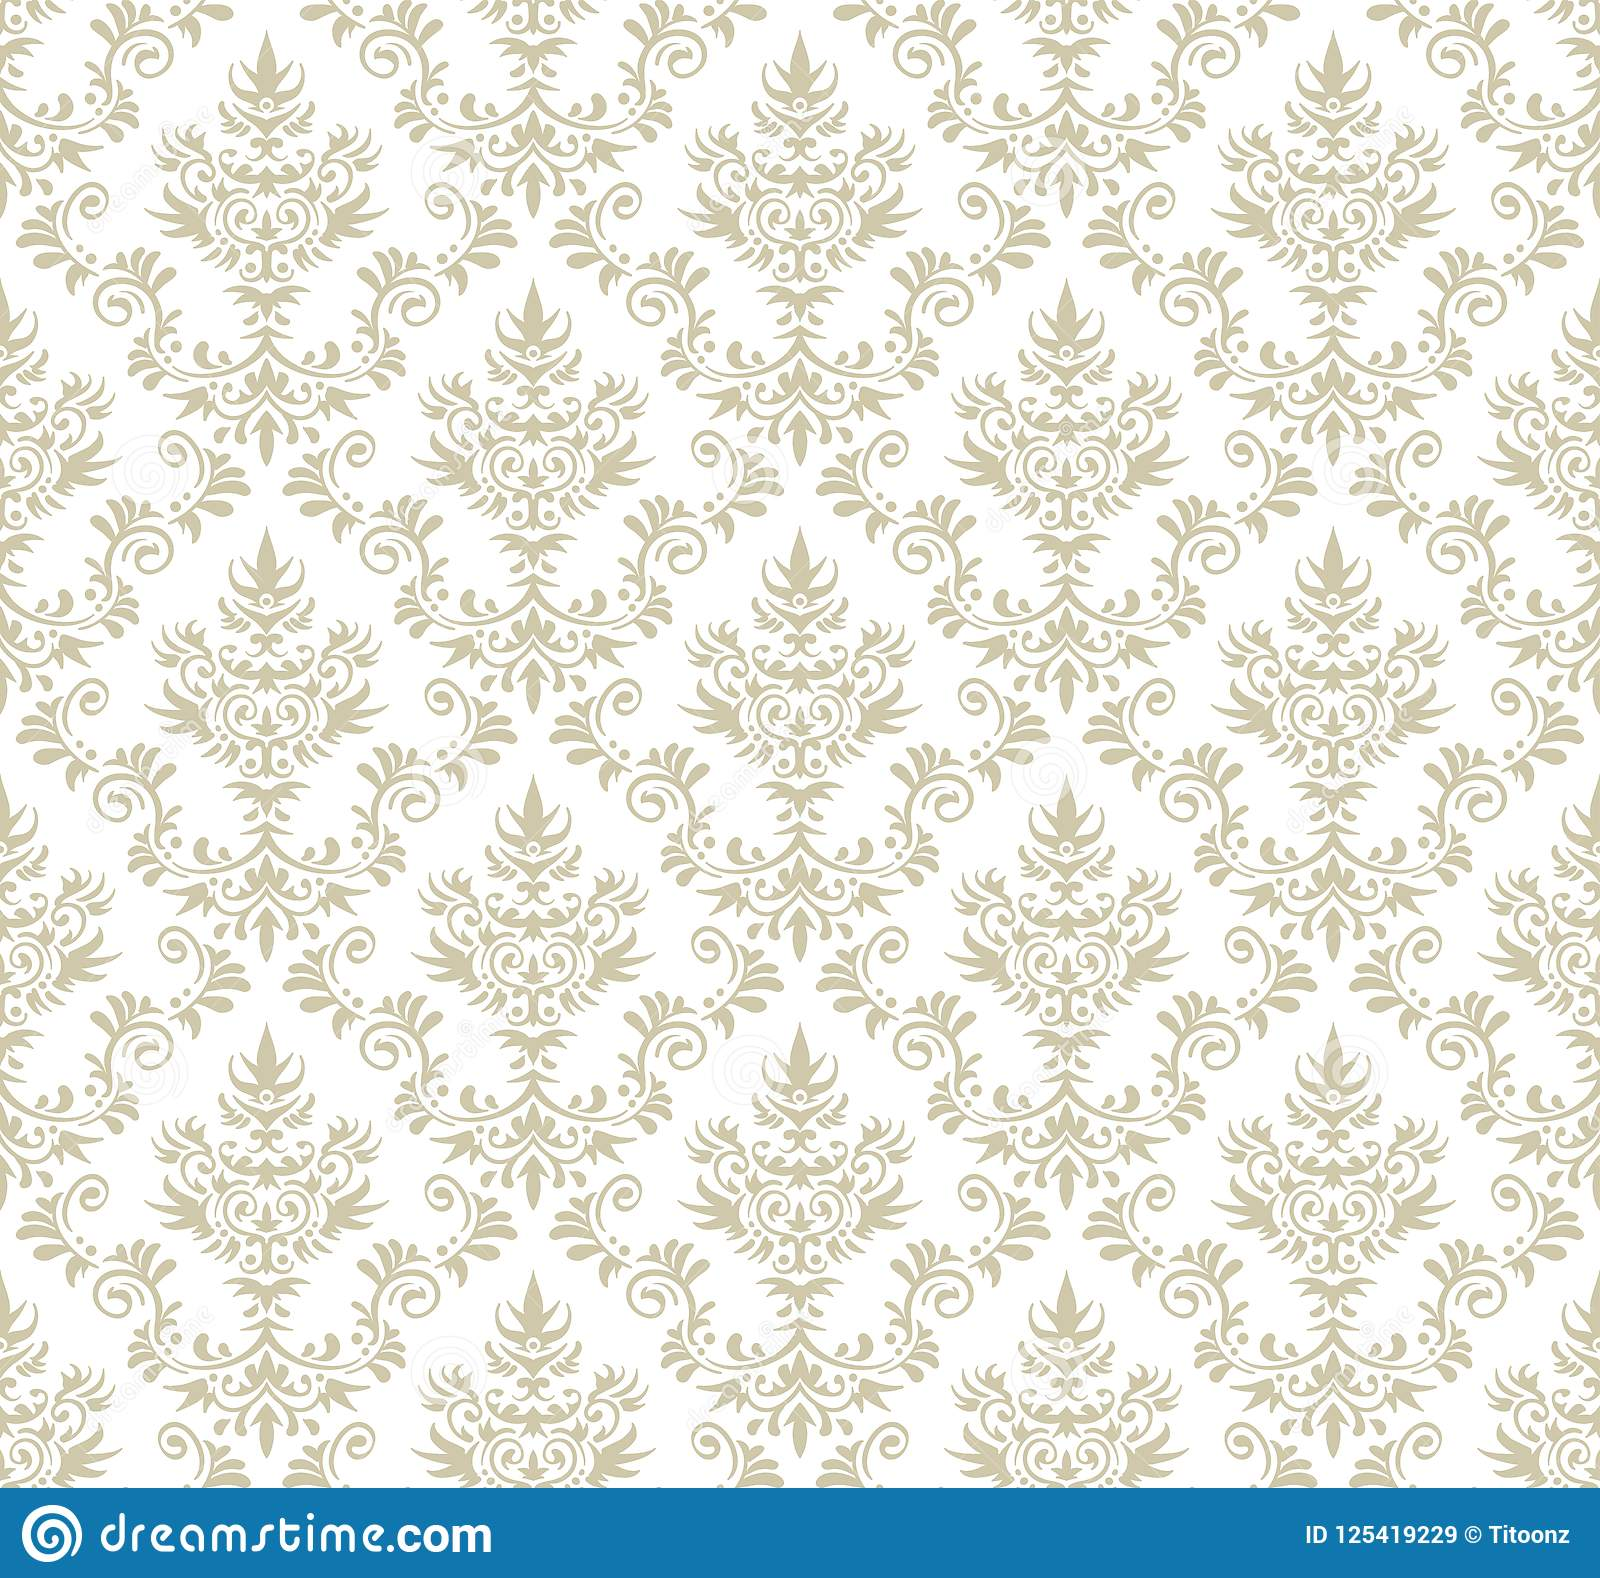 Seamless Floral Damask Pattern Stock Vector Illustration Of